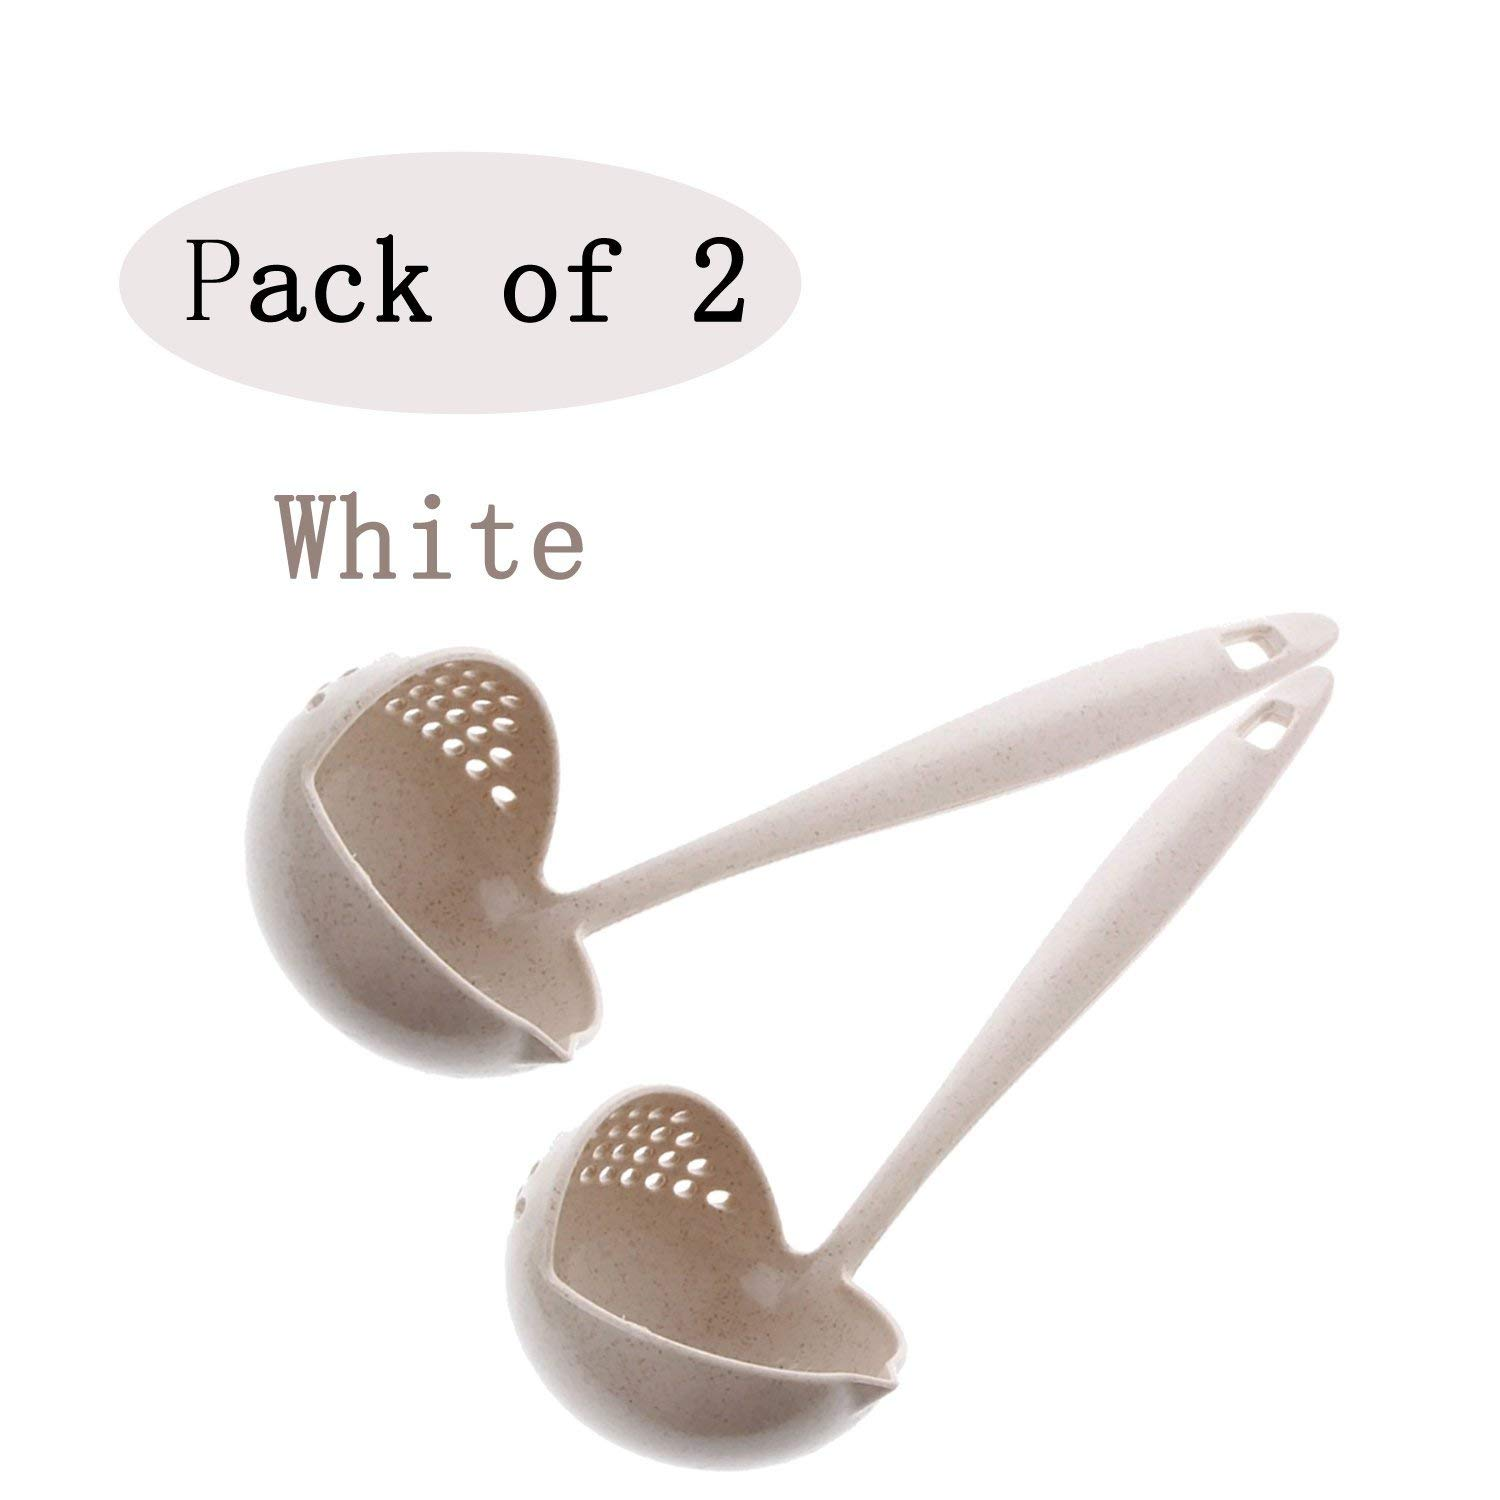 Qenci 2 in 1 Kitchen Tools Healthy Durable Wheat Straw Soup Spoon for Soup Egg Dumplings Hot Pot (White, 2Pcs)